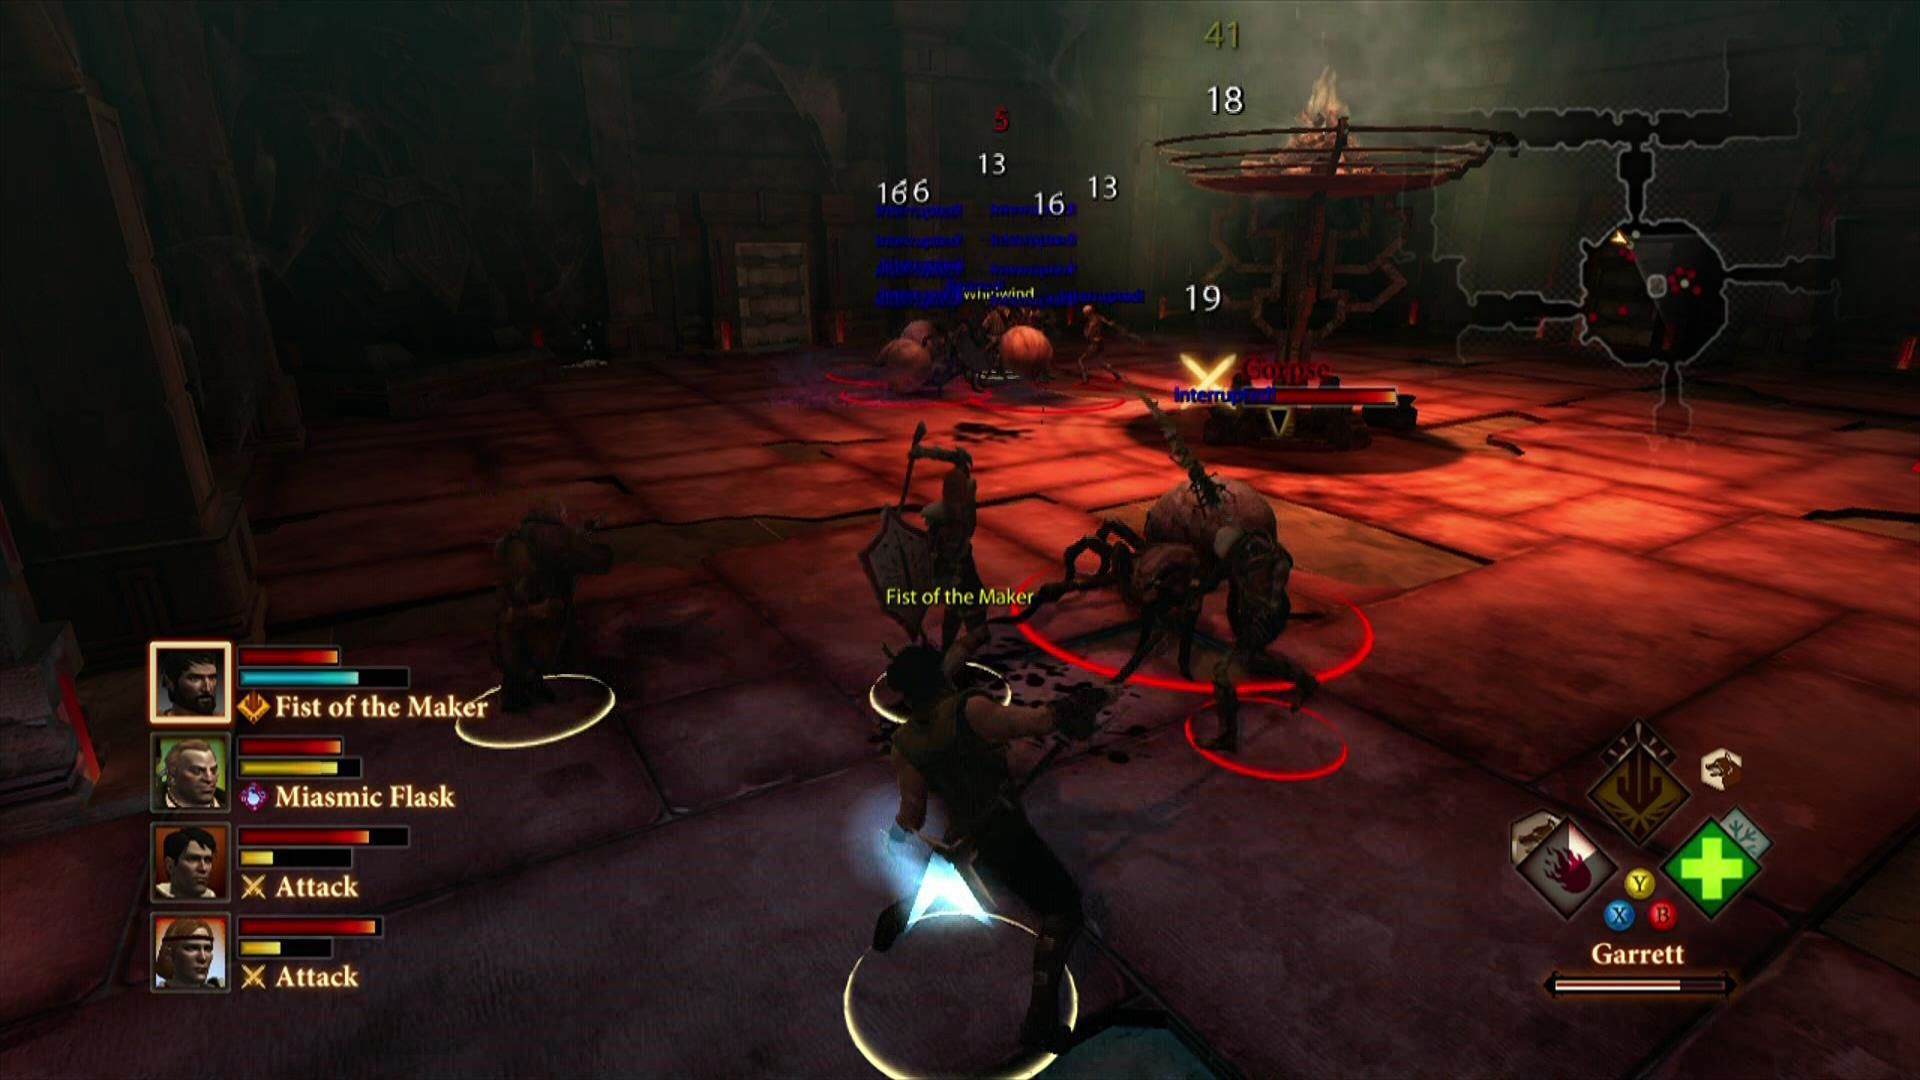 Dragon Age II Xbox 360 Another repeating dungeon layout